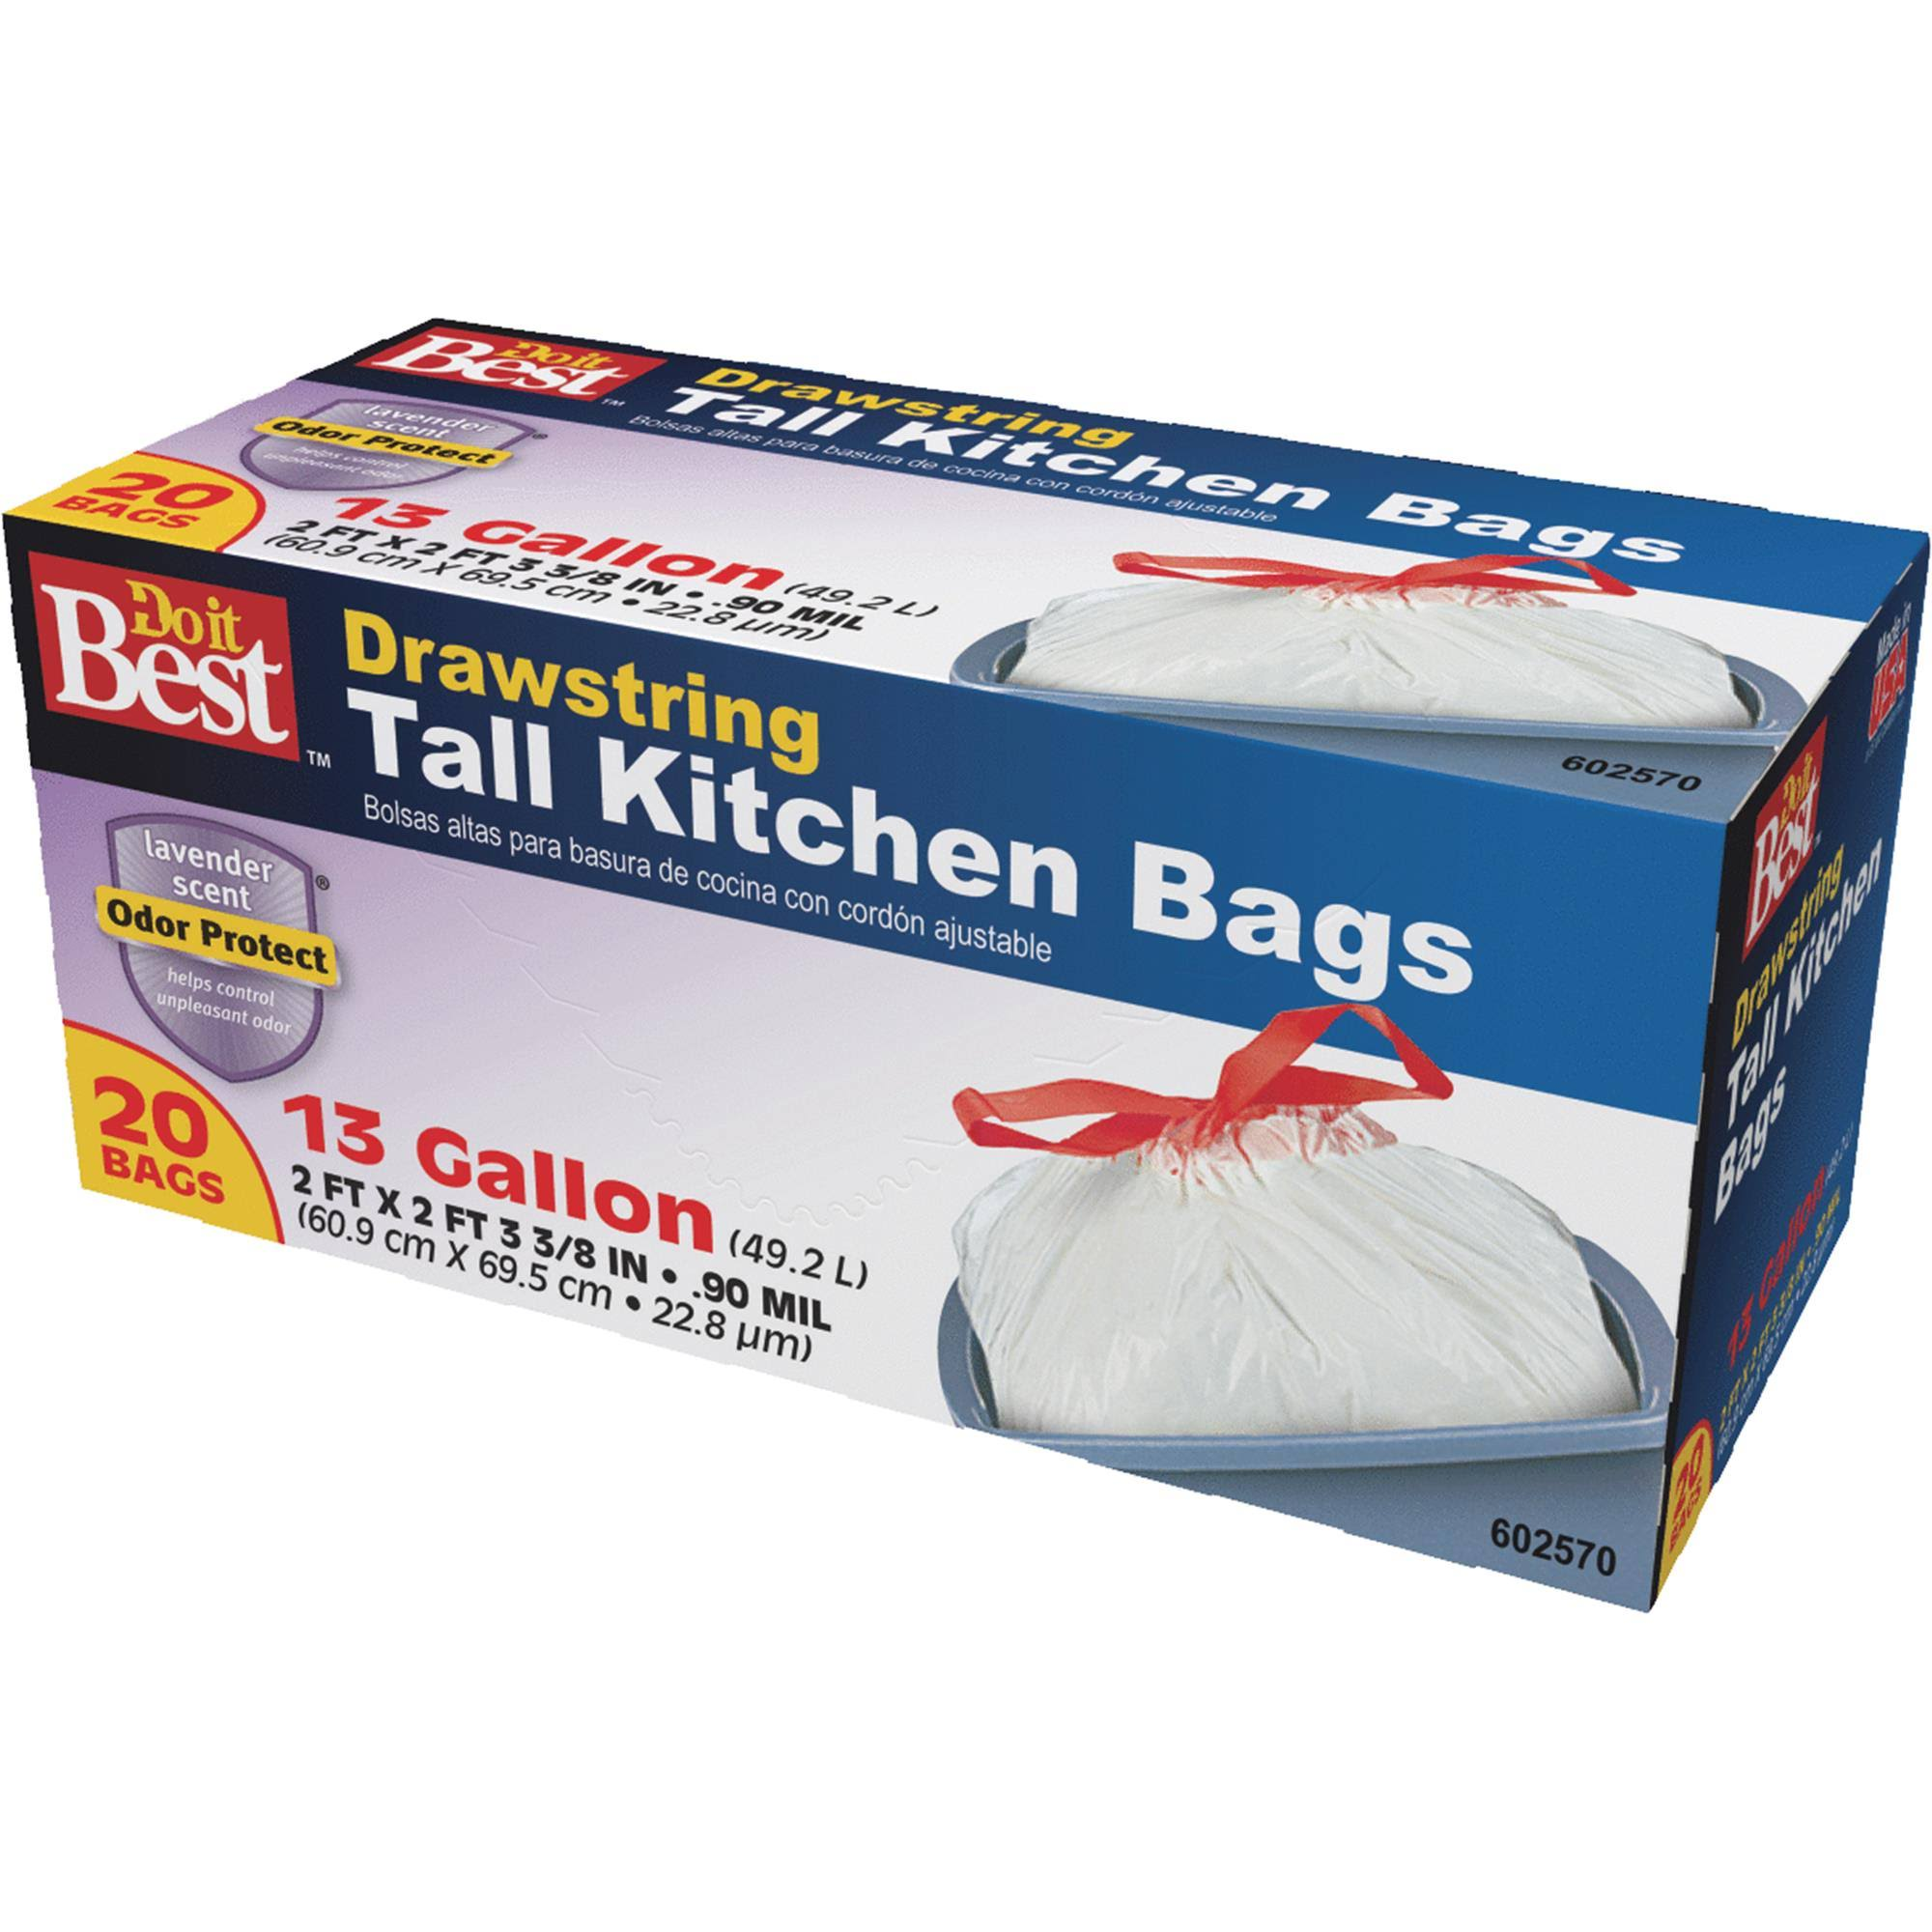 Do It Best Tall Kitchen Trash Bag - 20 Bags